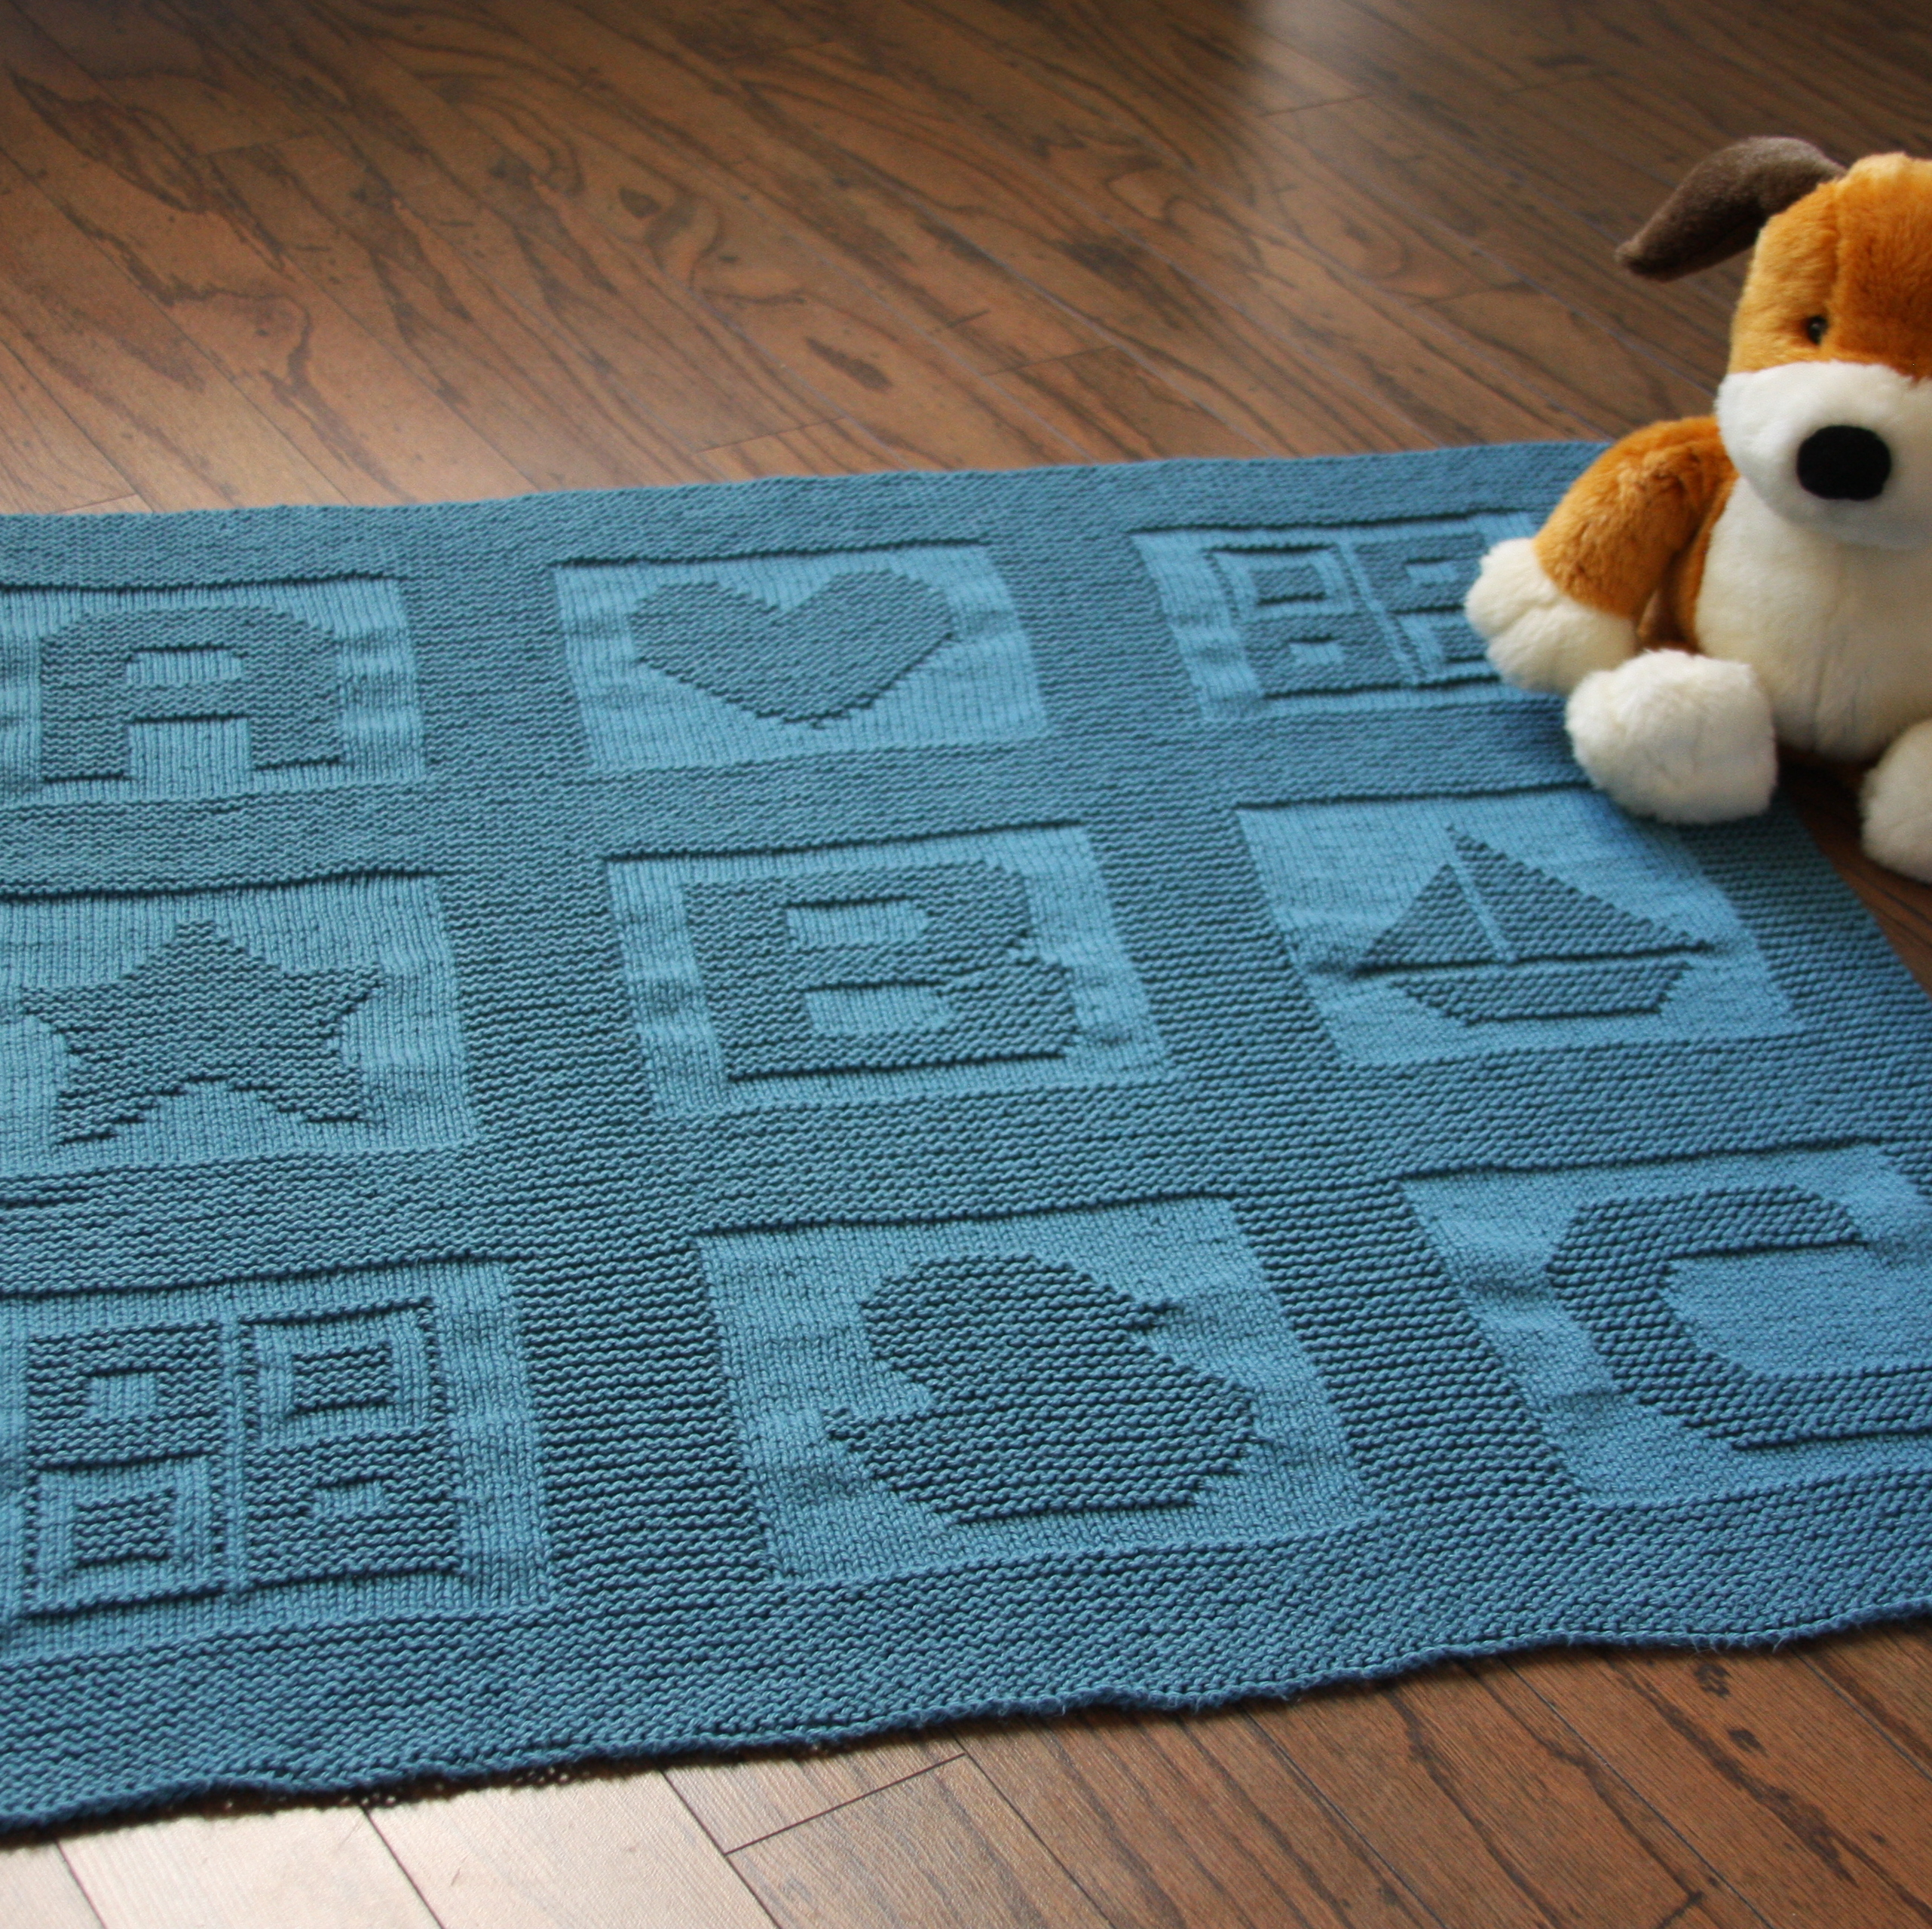 Free Knitting Patterns For Baby Blankets Ba Blanket Contemporary Knitted Blankets For Cats Protection